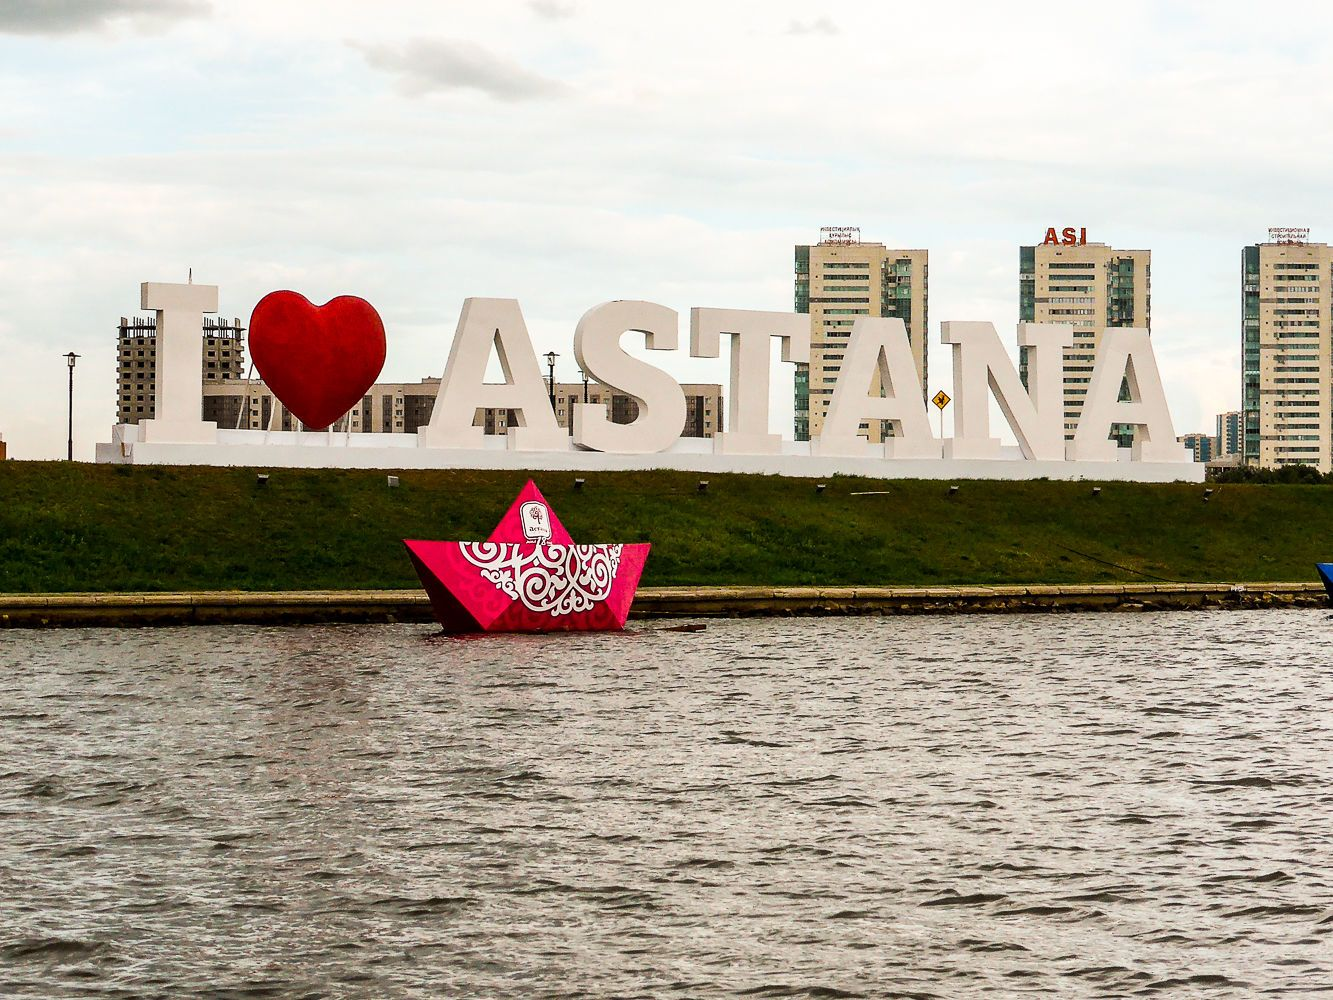 I love Astana sign near Ishim river in Kazakhstan during EXPO2017 tour